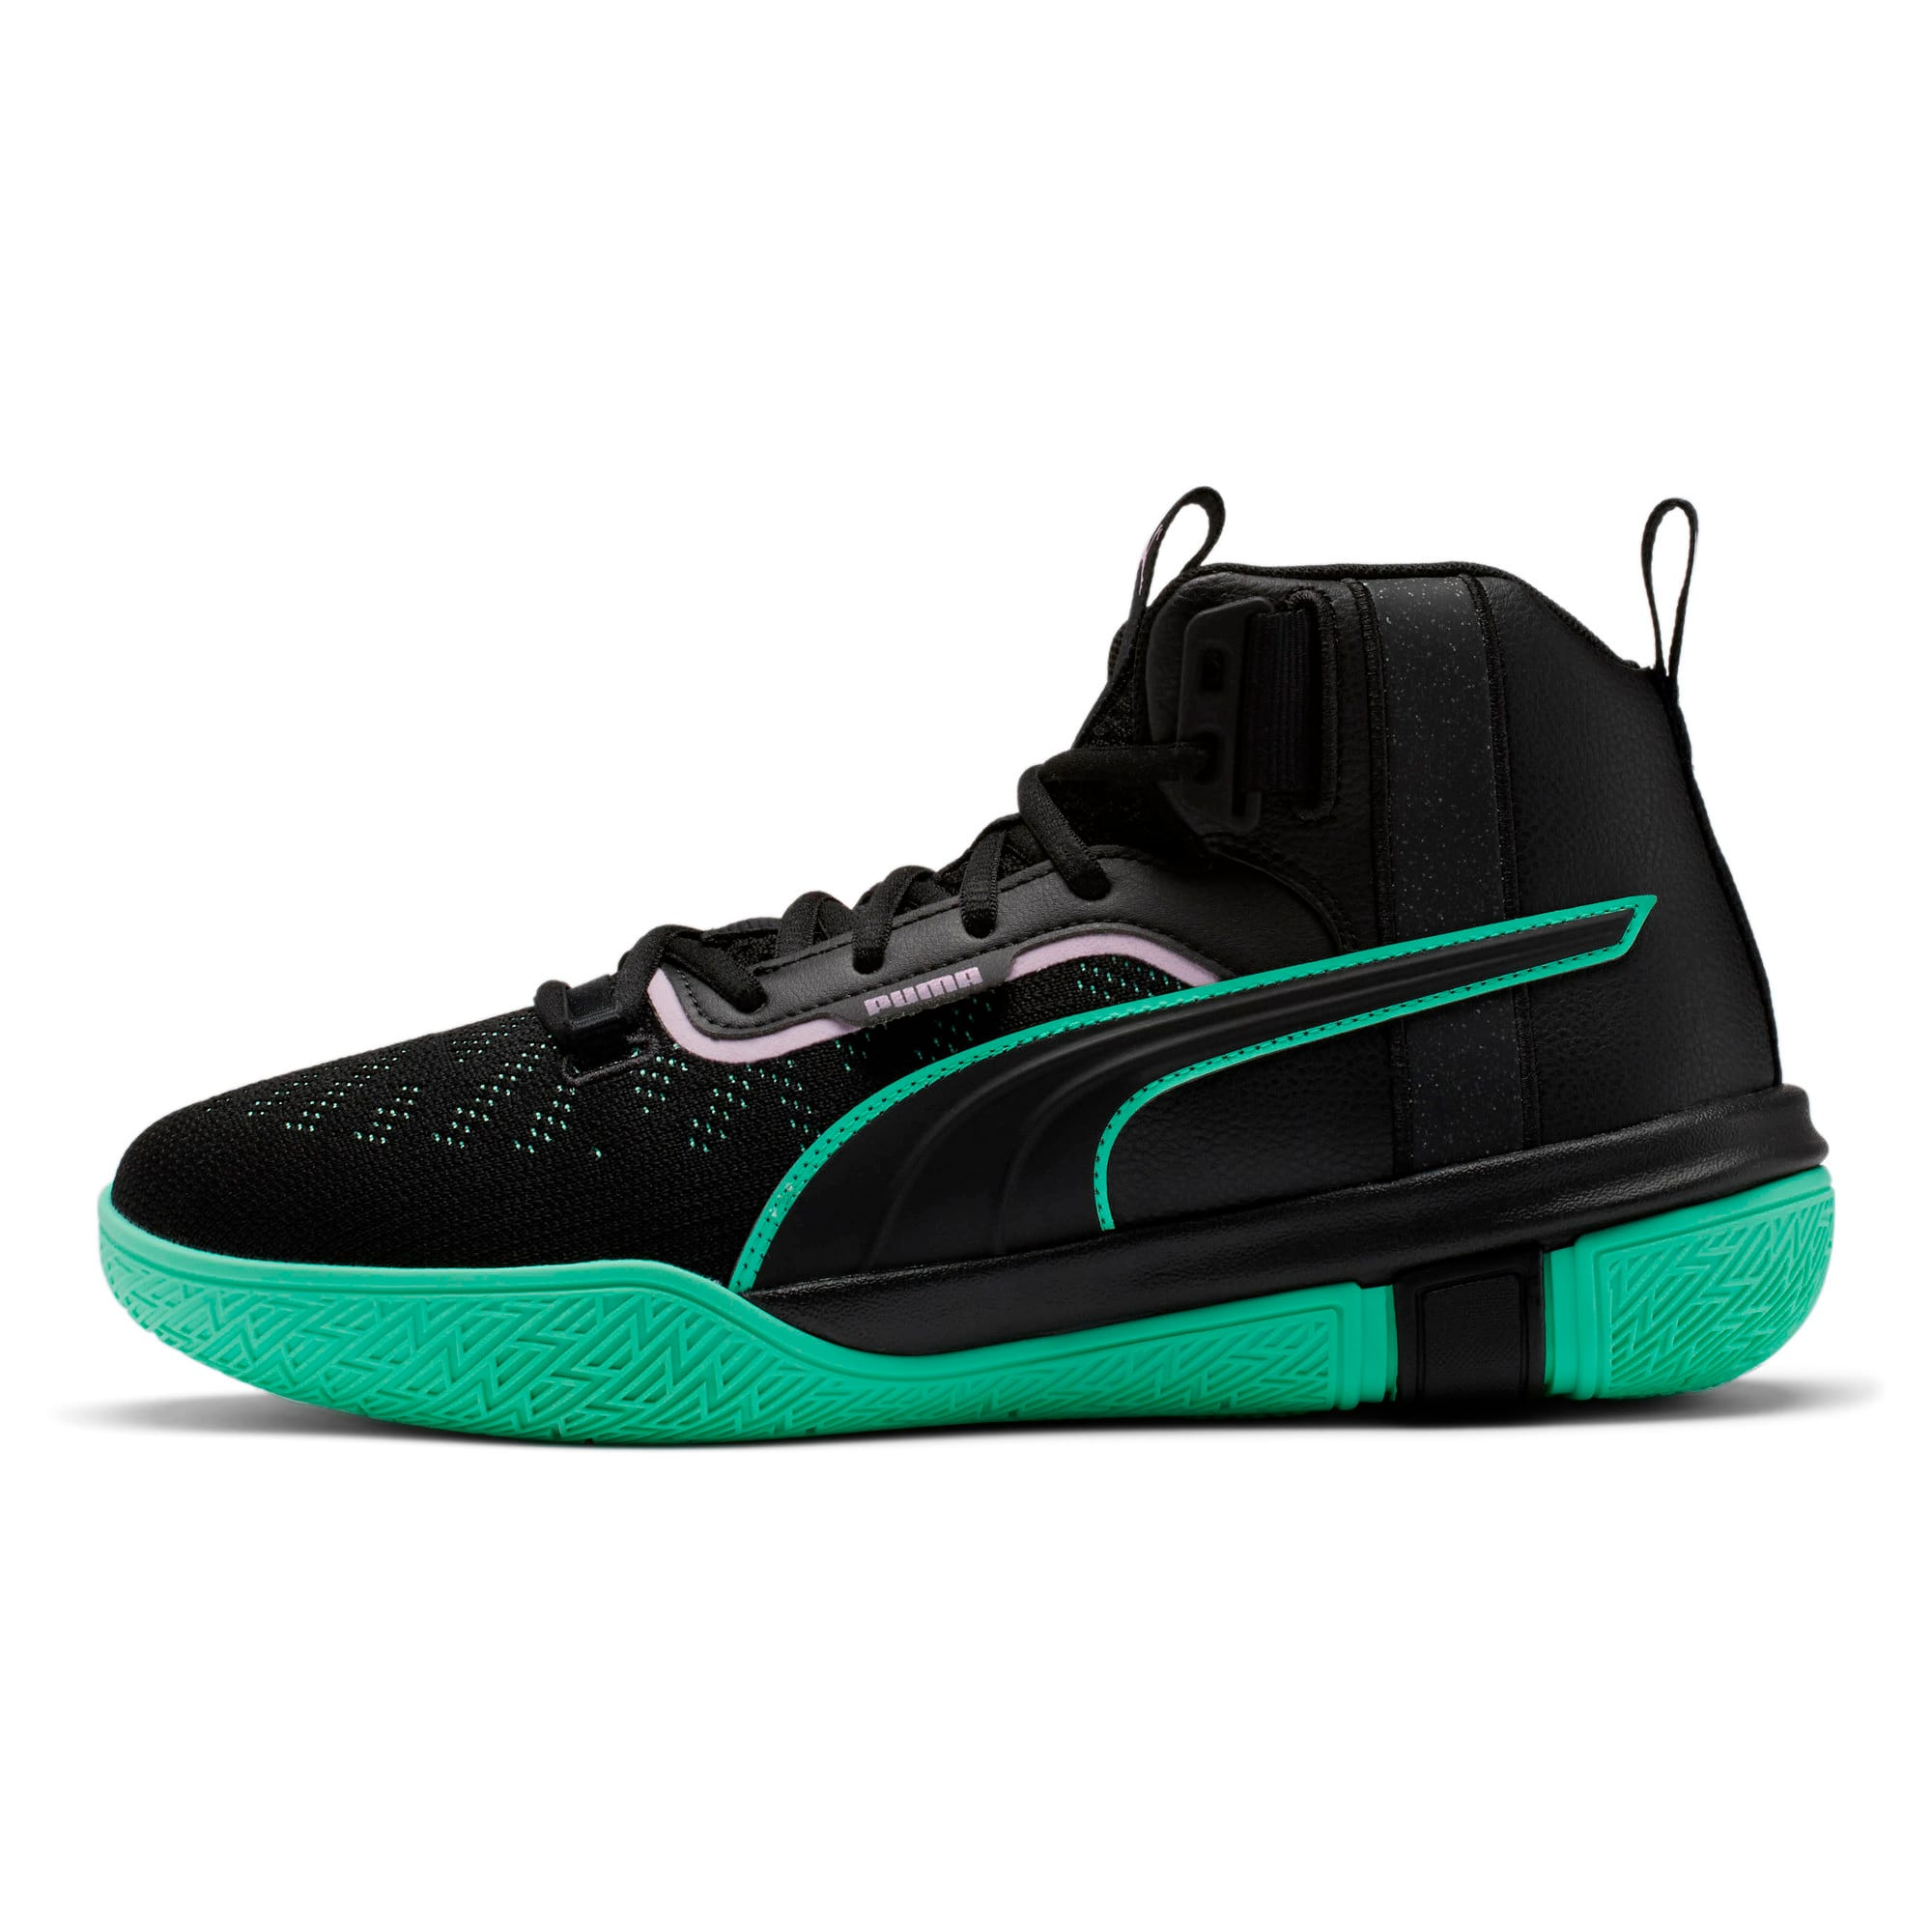 Thumbnail 1 of Legacy Dark Mode Basketball Shoes, Puma Black-Orchid Bloom, medium-IND